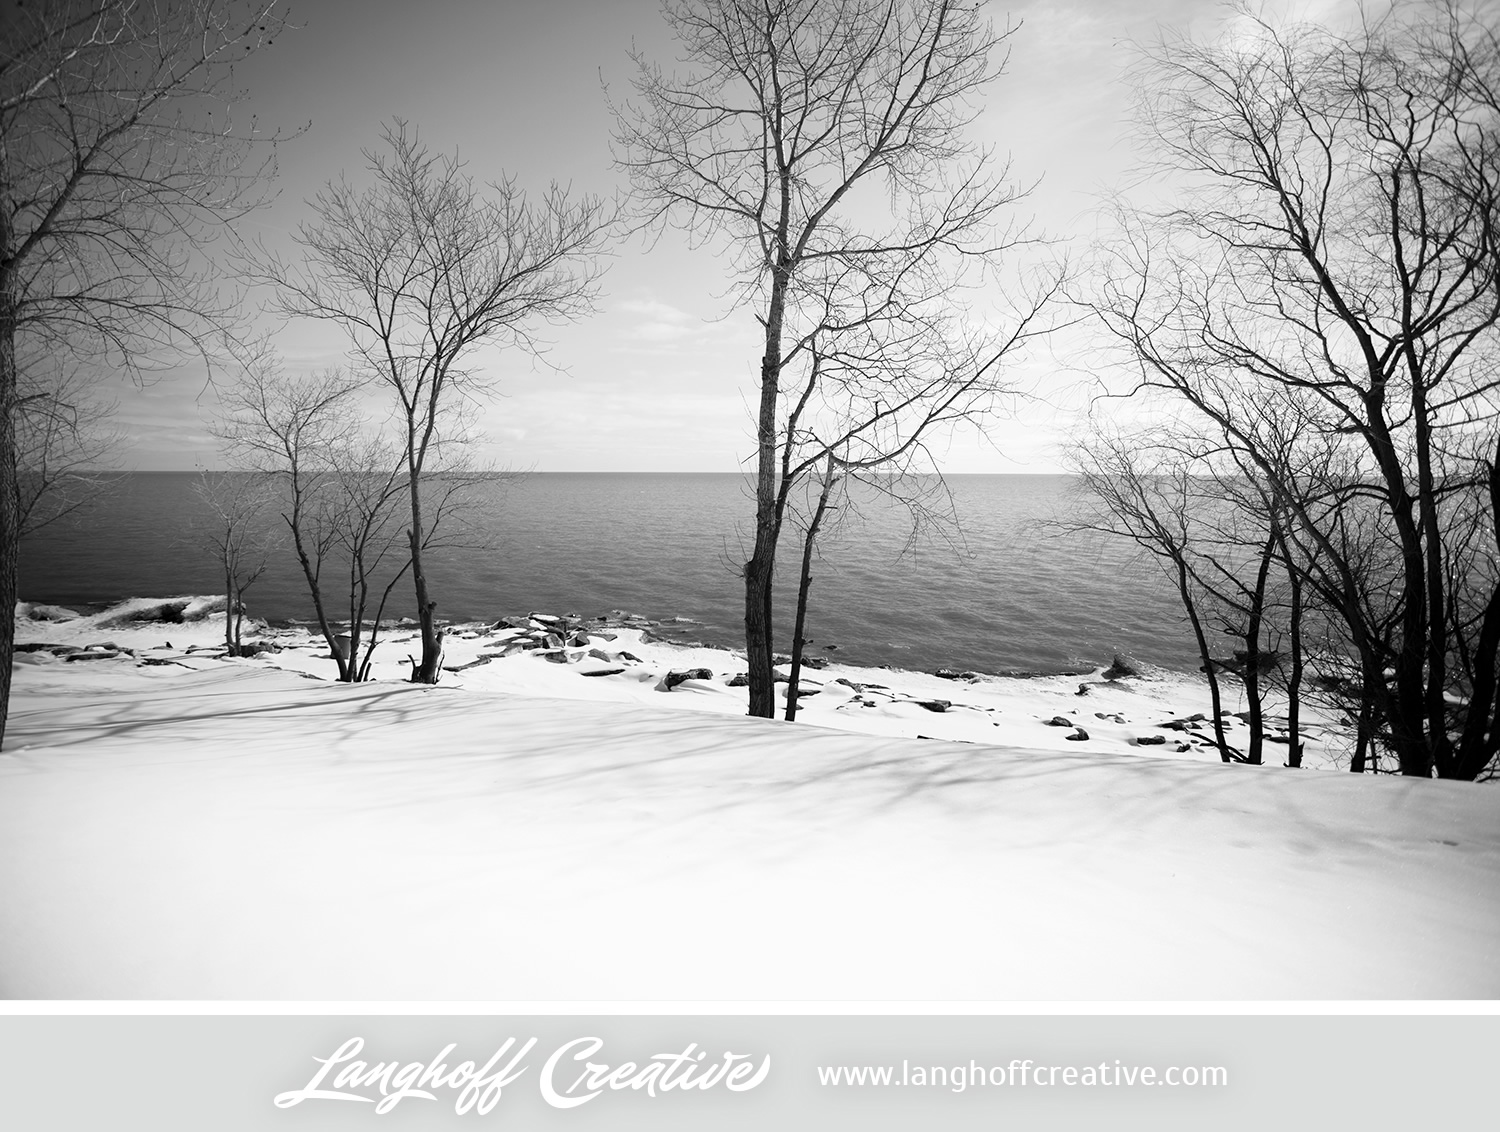 LanghoffCreative-20130308-winter17-image.jpg